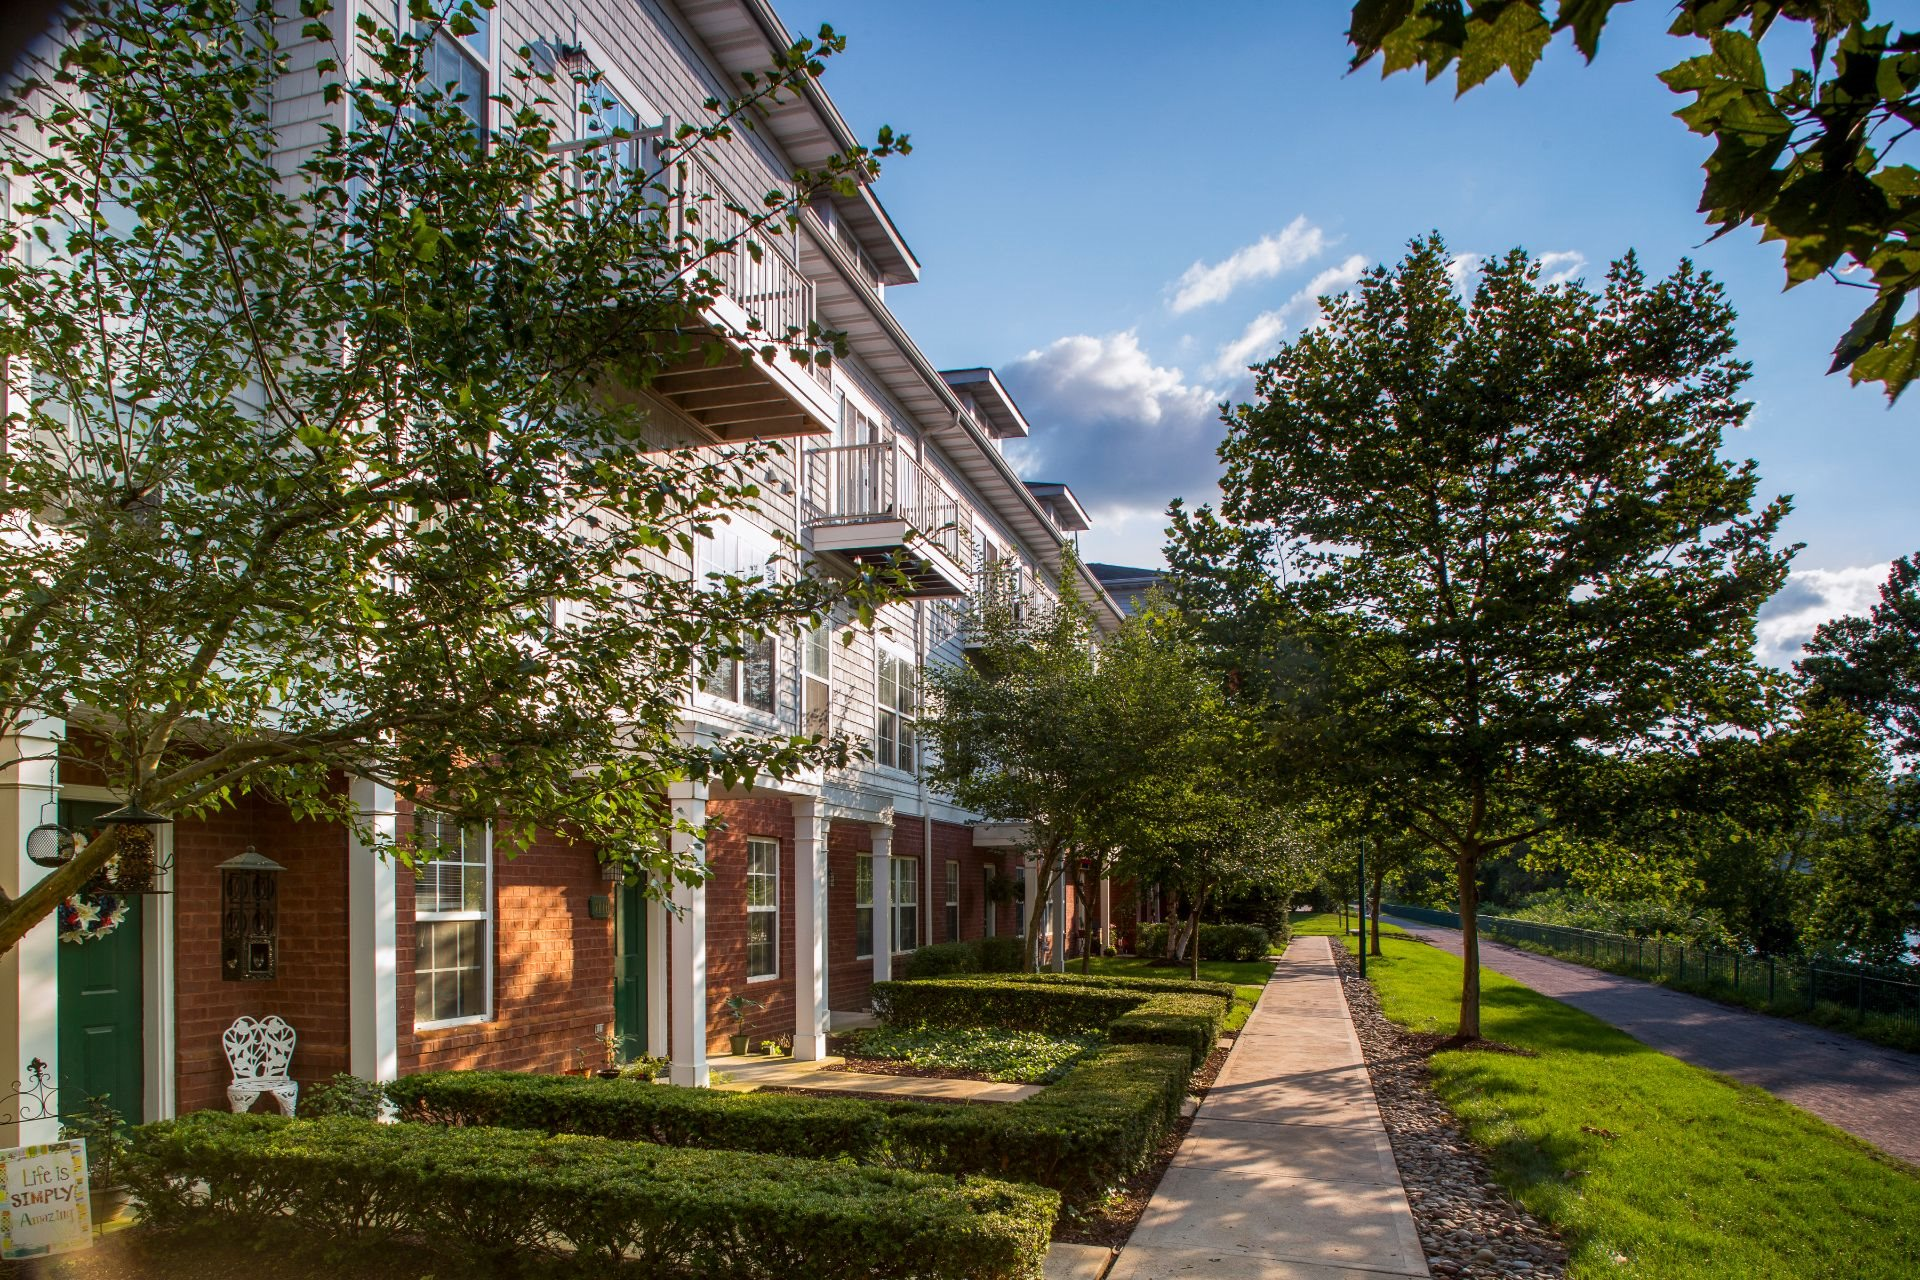 The Waterfront  Pet-Friendly Apartments and Townhomes, 611 E. Waterfront Drive, Munhall, PA 15120